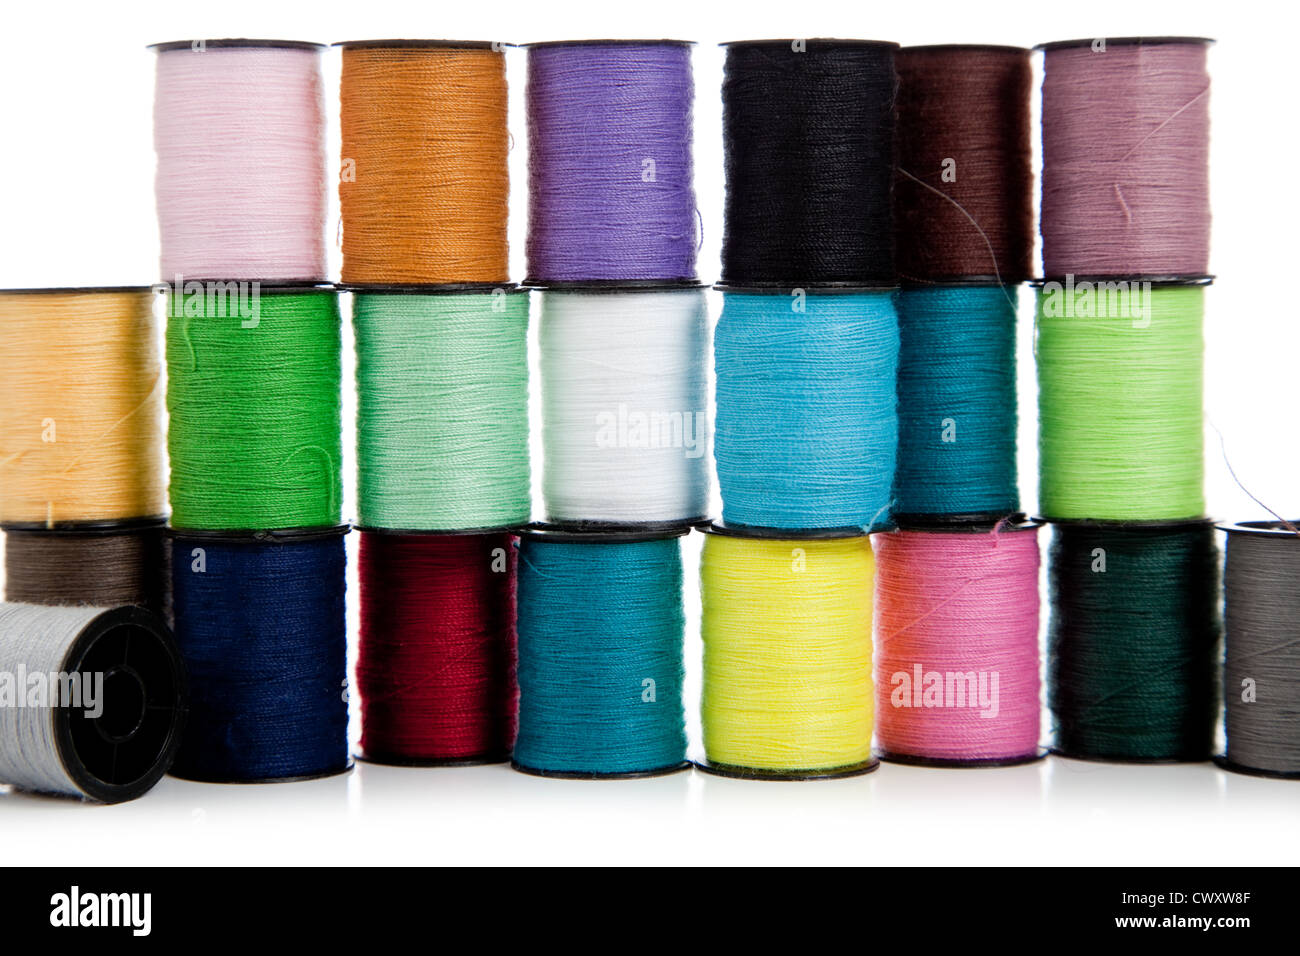 Assorted colored spools of thread on a white background - Stock Image